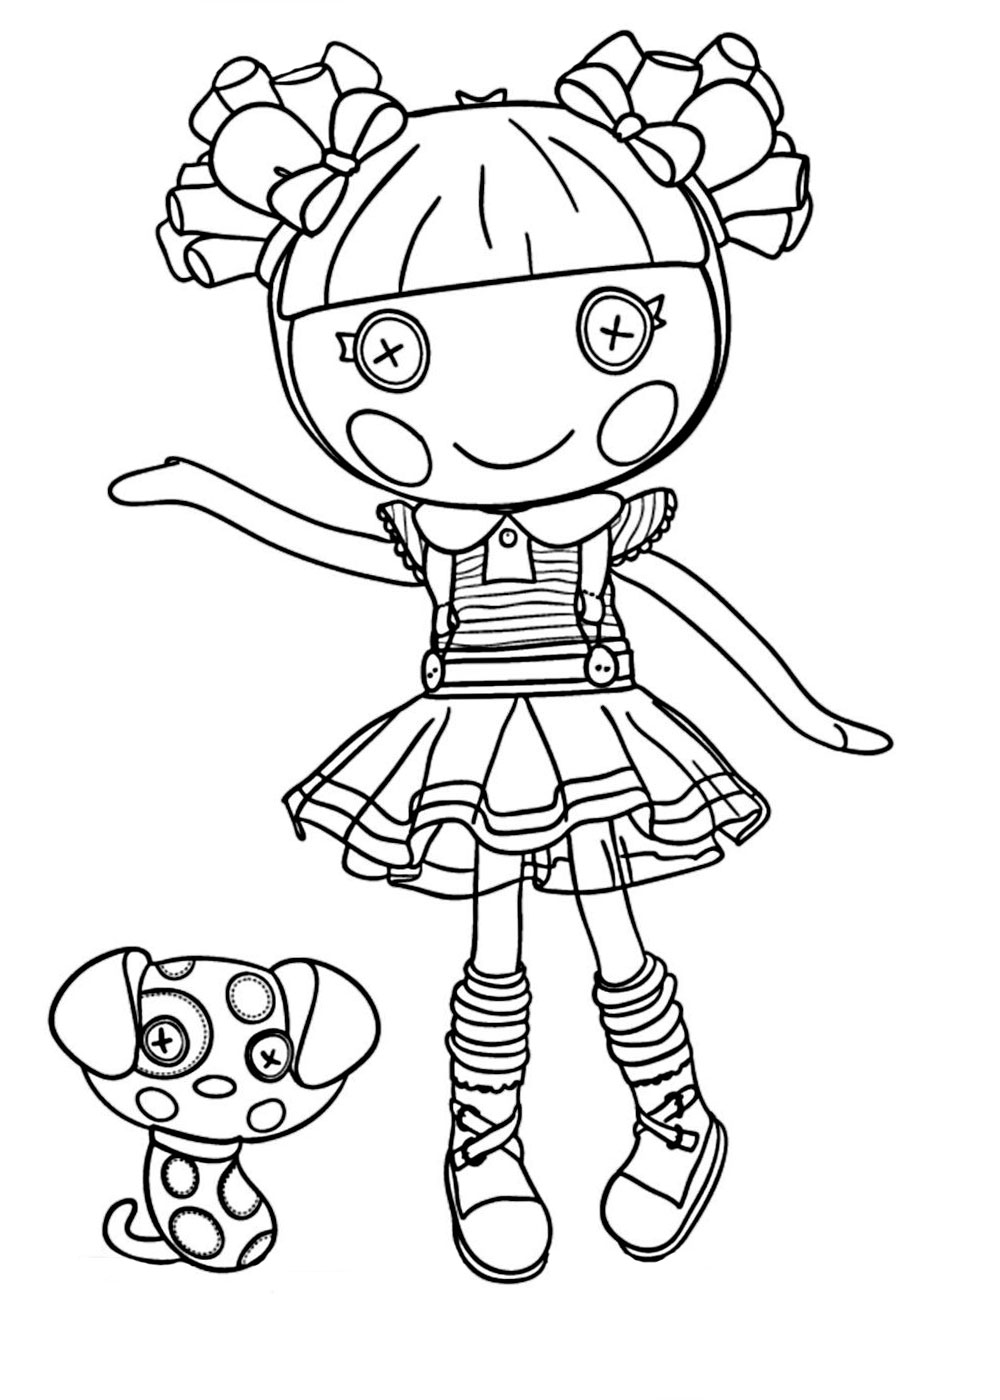 Adult Beauty Coloring Pages Lalaloopsy Gallery Images beauty lalaloopsy coloring pages for girls to print free gallery images